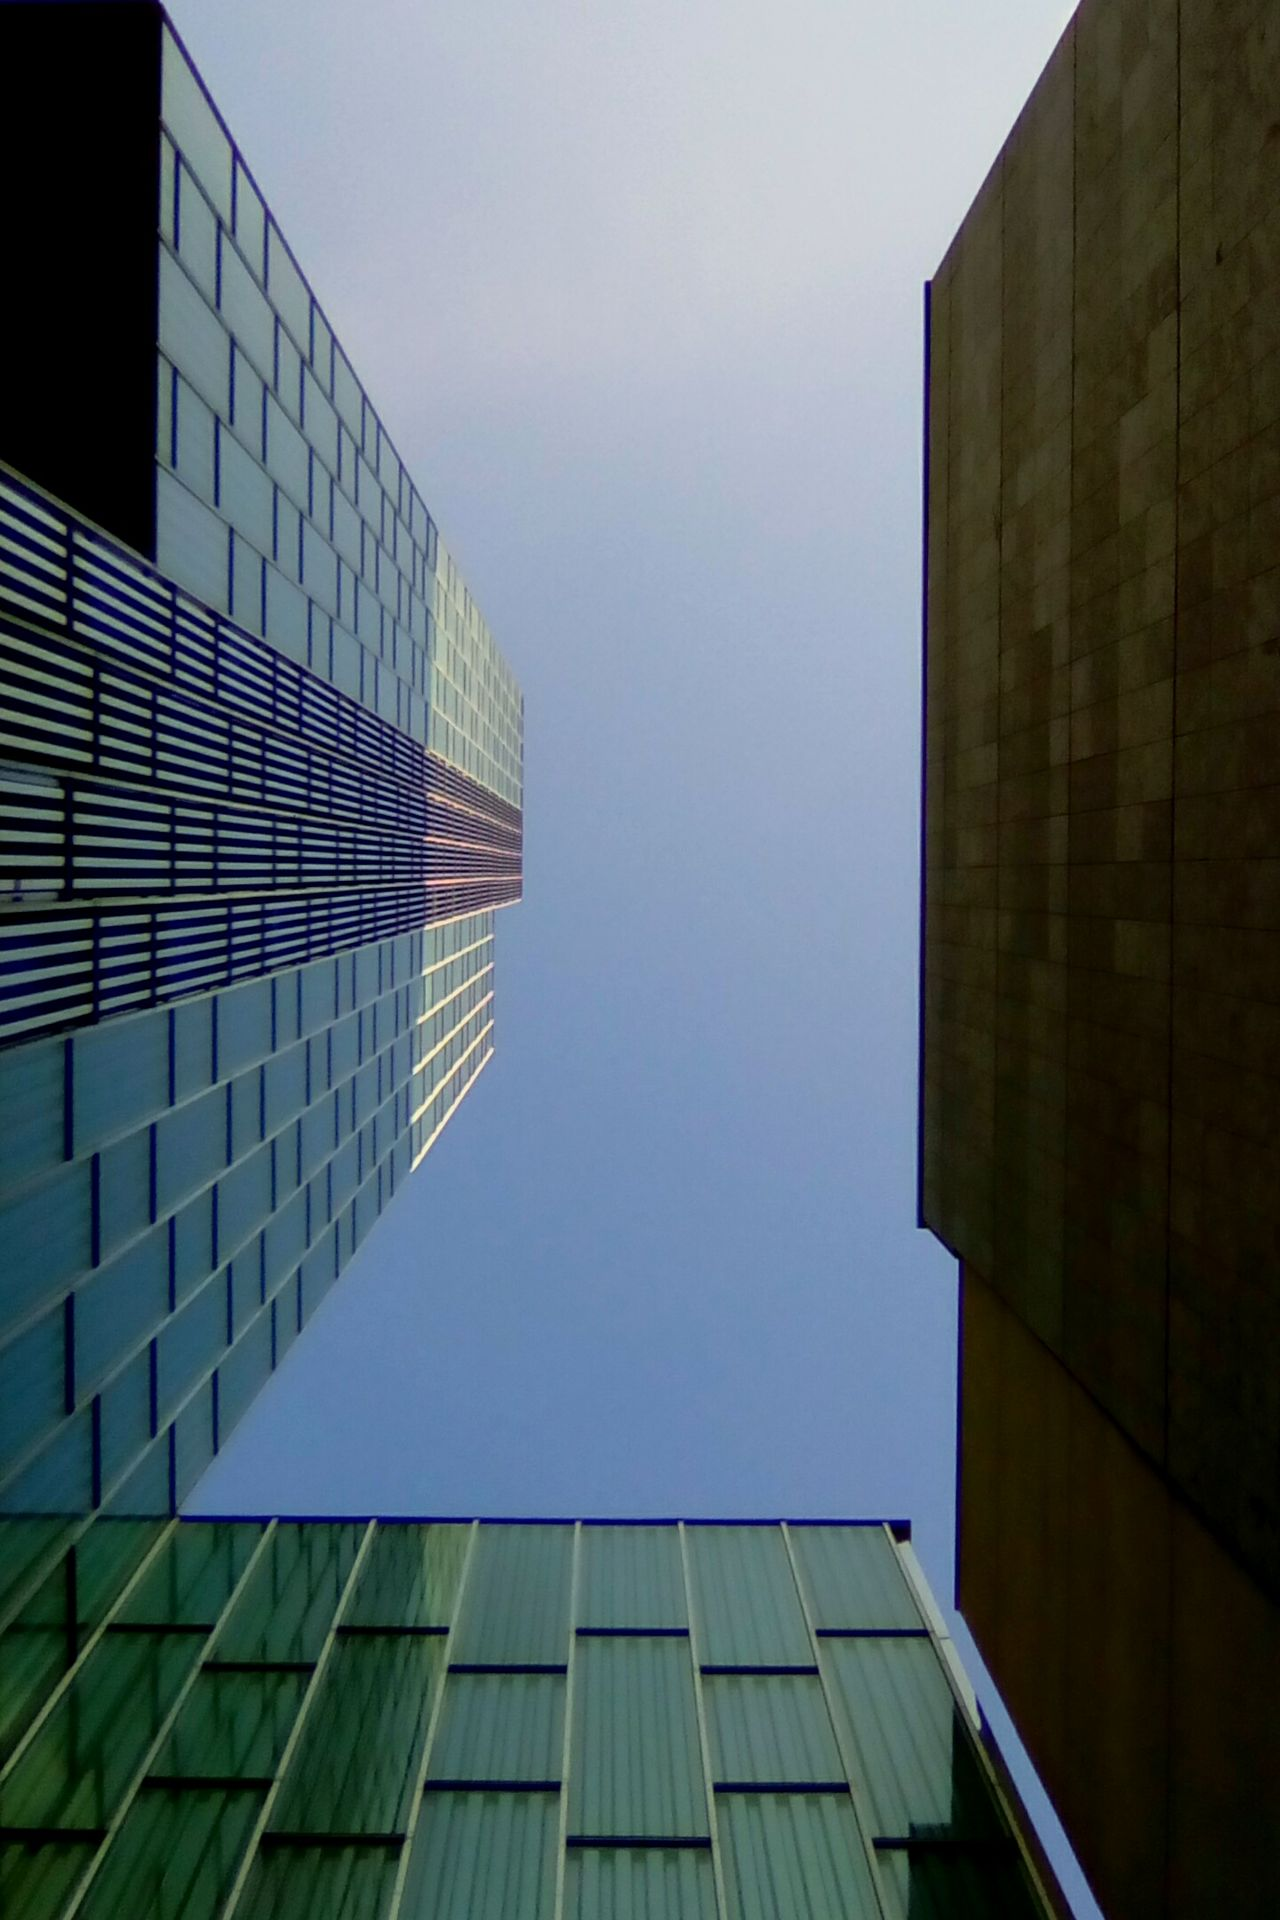 Architecture Built Structure Skyscraper Modern No People Outdoors Futuristic Color High Angle View Backgrounds Light And Shadow Open Edit Things I See